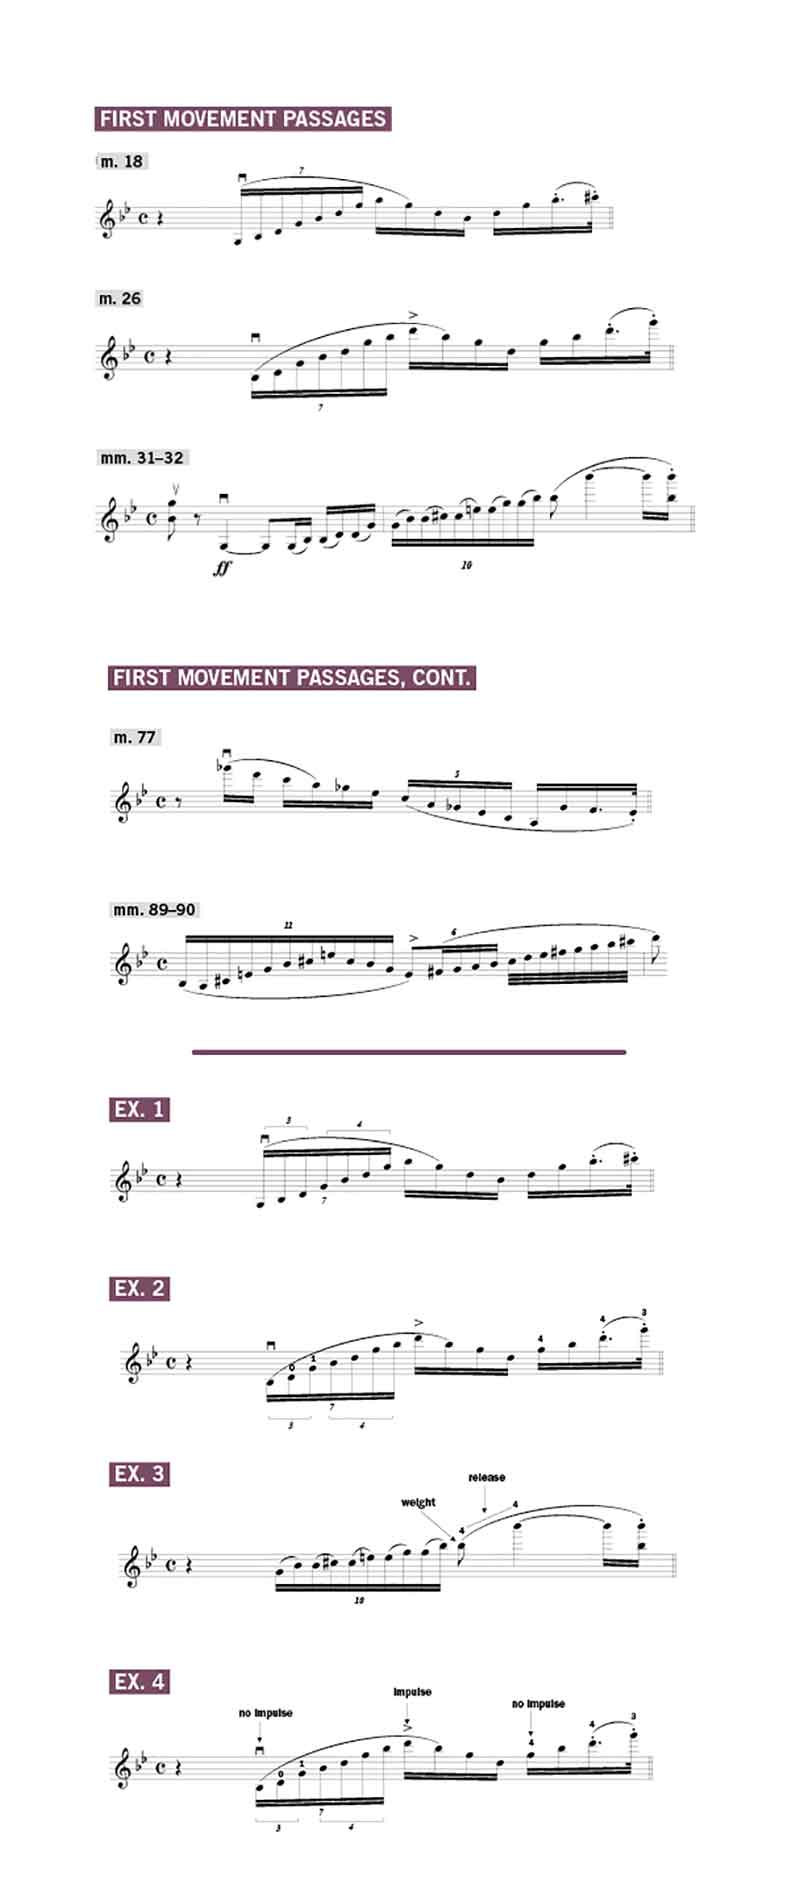 the First Movement of the Bruch Violin Concerto No. 1 in G Minor